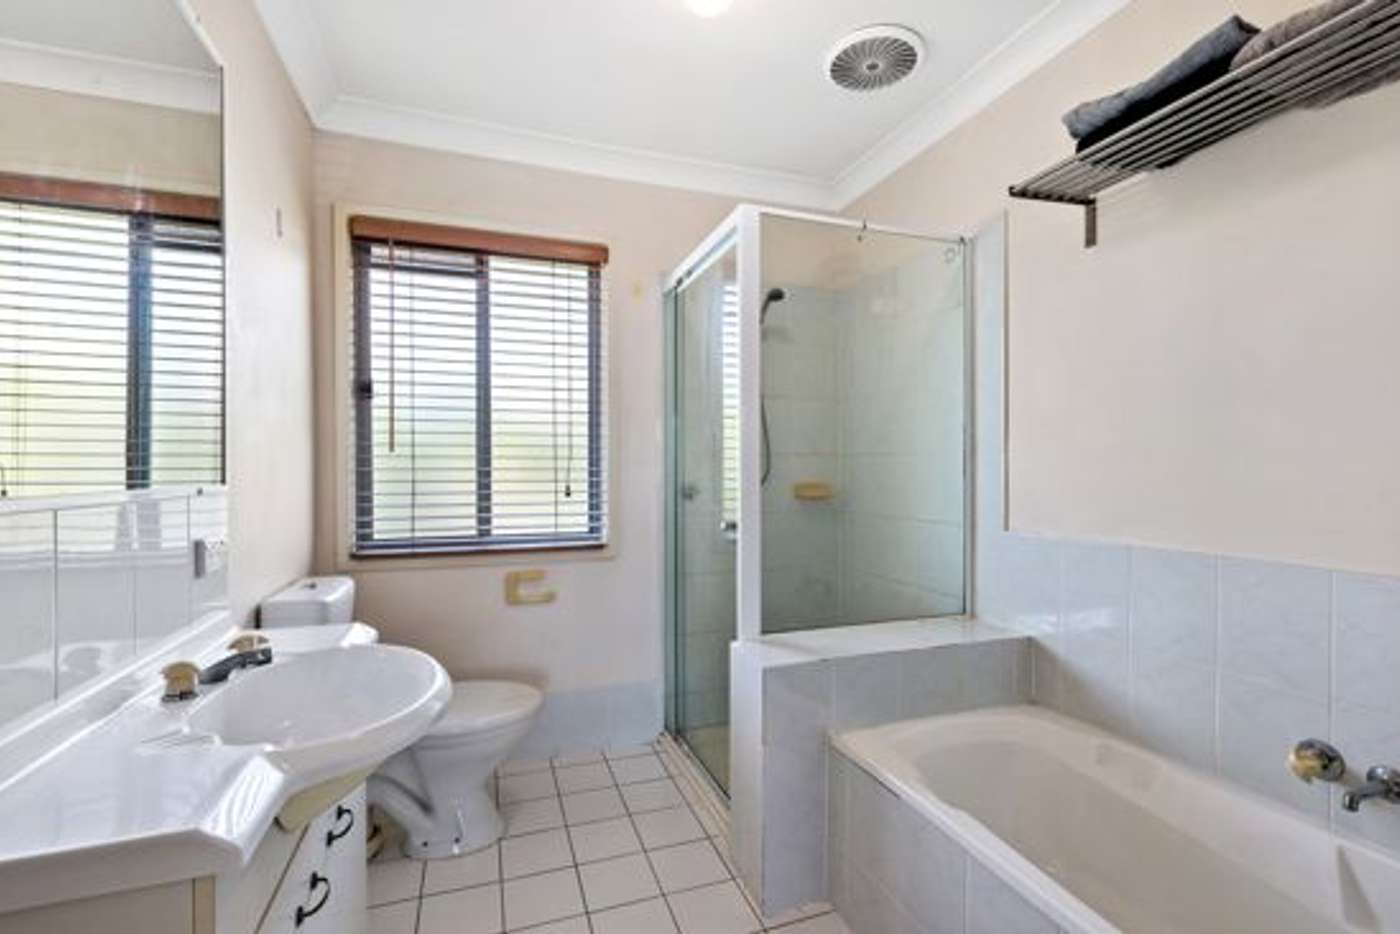 Sixth view of Homely townhouse listing, Unit 70 / 26 Mond Street, Thorneside QLD 4158